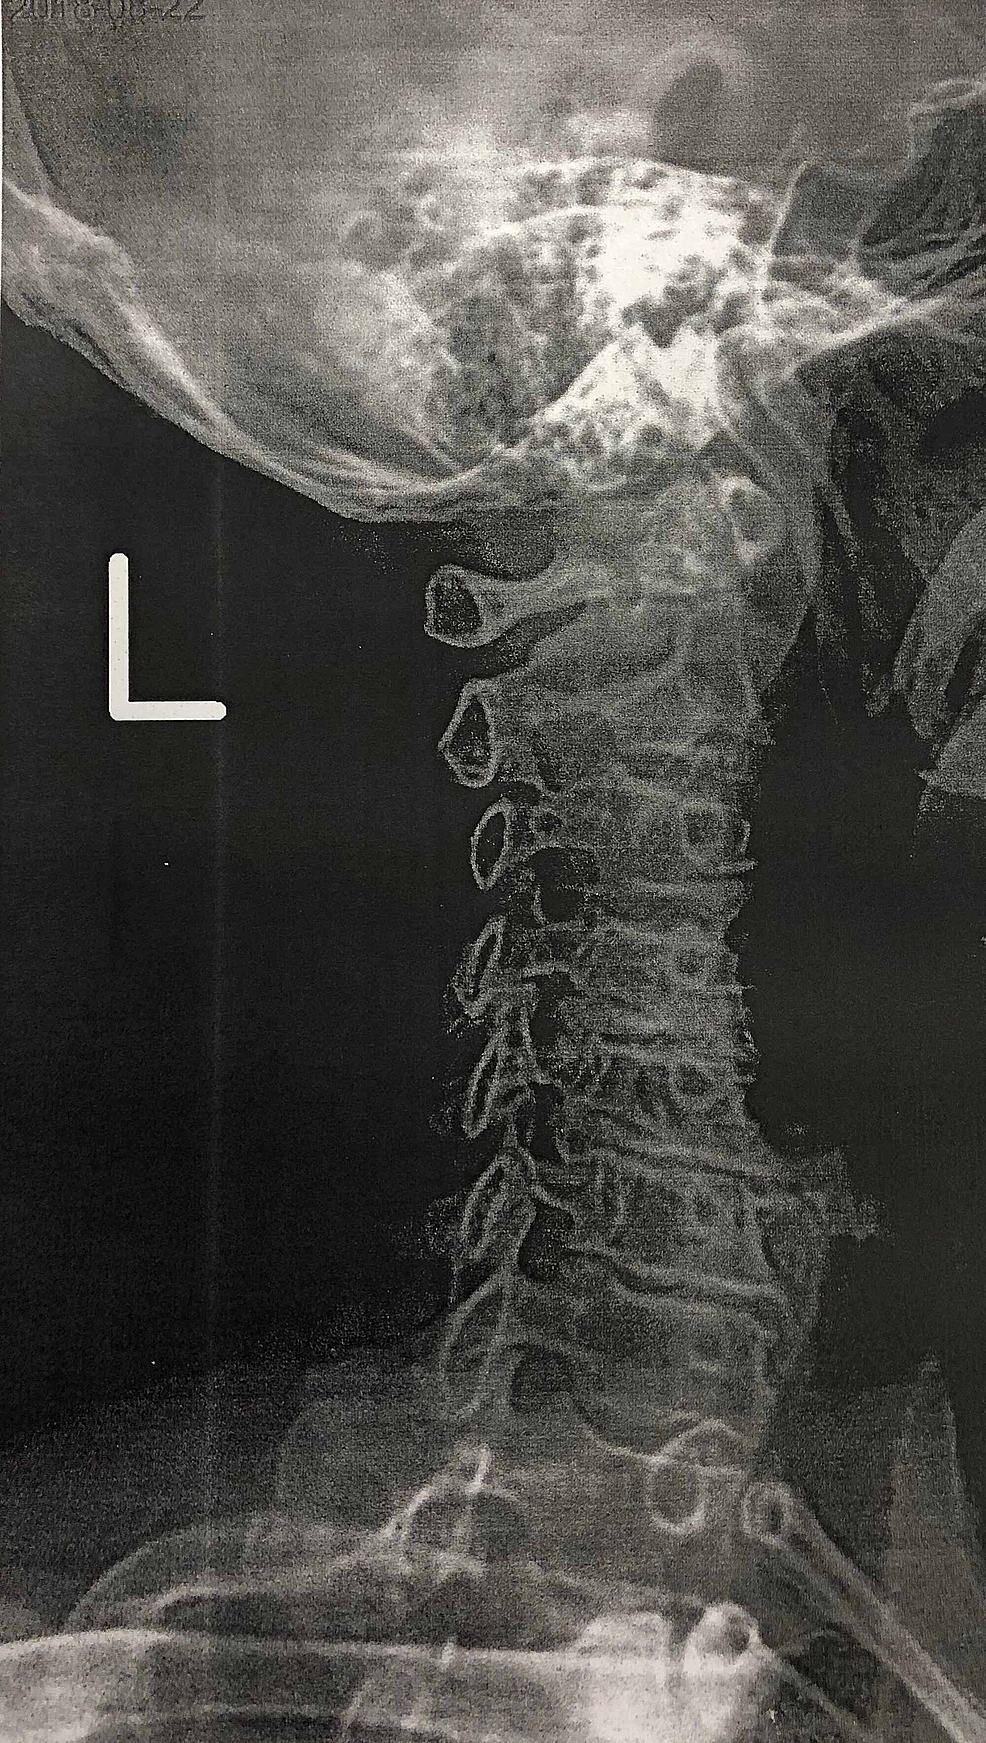 Left-cervical-spine-x-ray-demonstrating-moderate-to-severe-degenerative-changes-at-the-level-of-C4-C7-with-intervertebral-foramen-narrowing,-consistent-with-symptomatic-cervical-spine-disease.